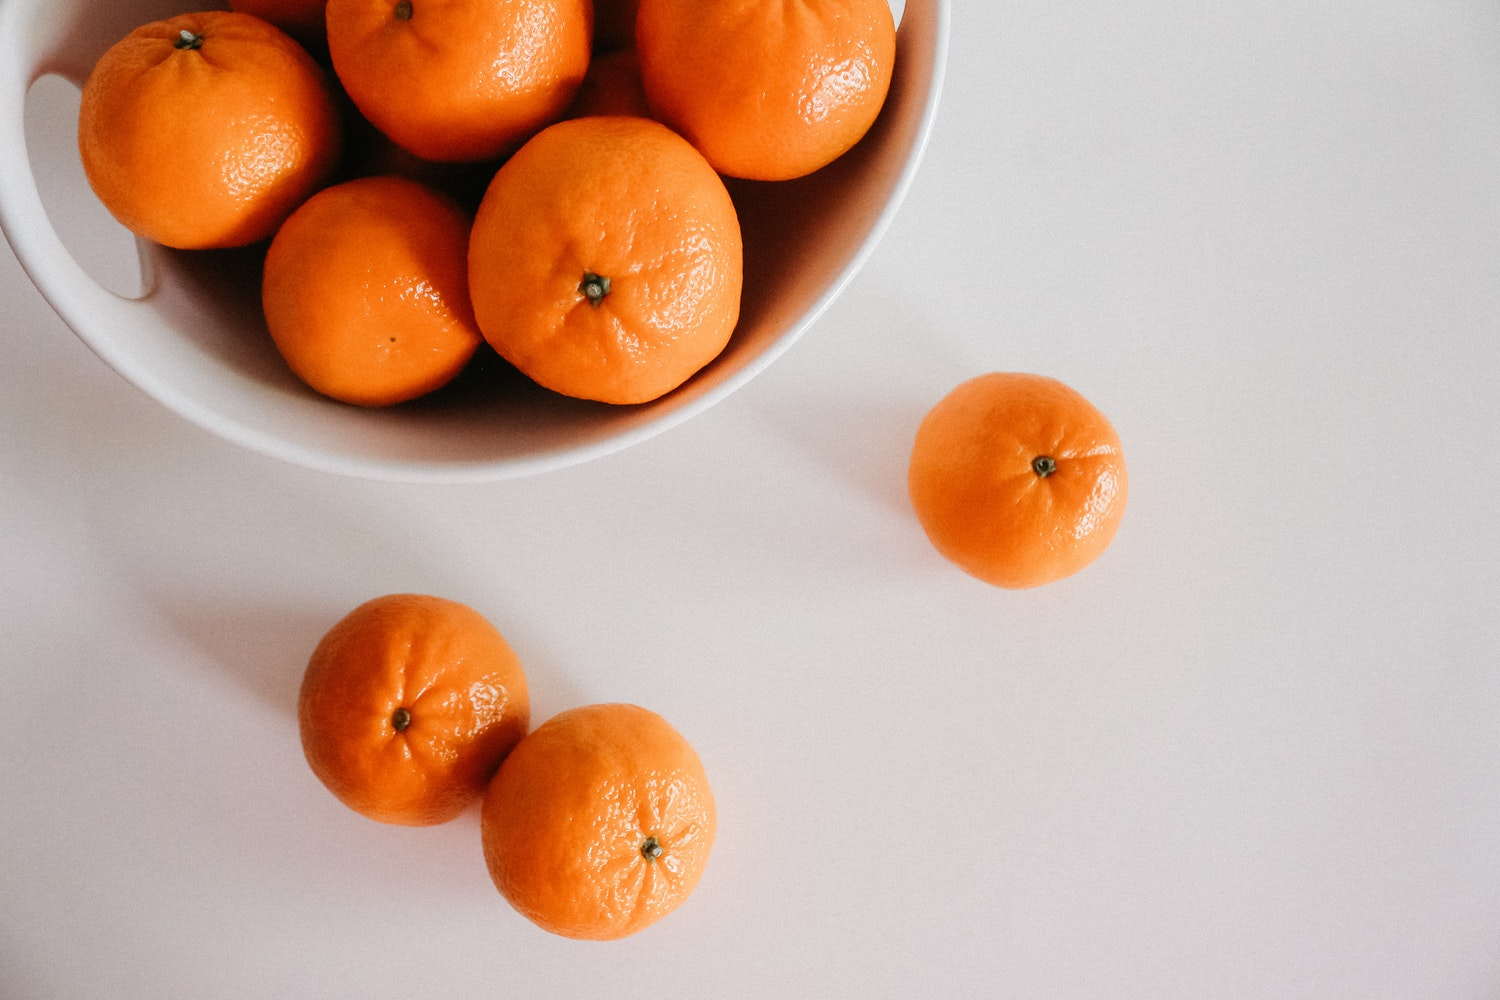 Oranges | Juicing For A Cold: 3 Recipes To Boost Your Immune System